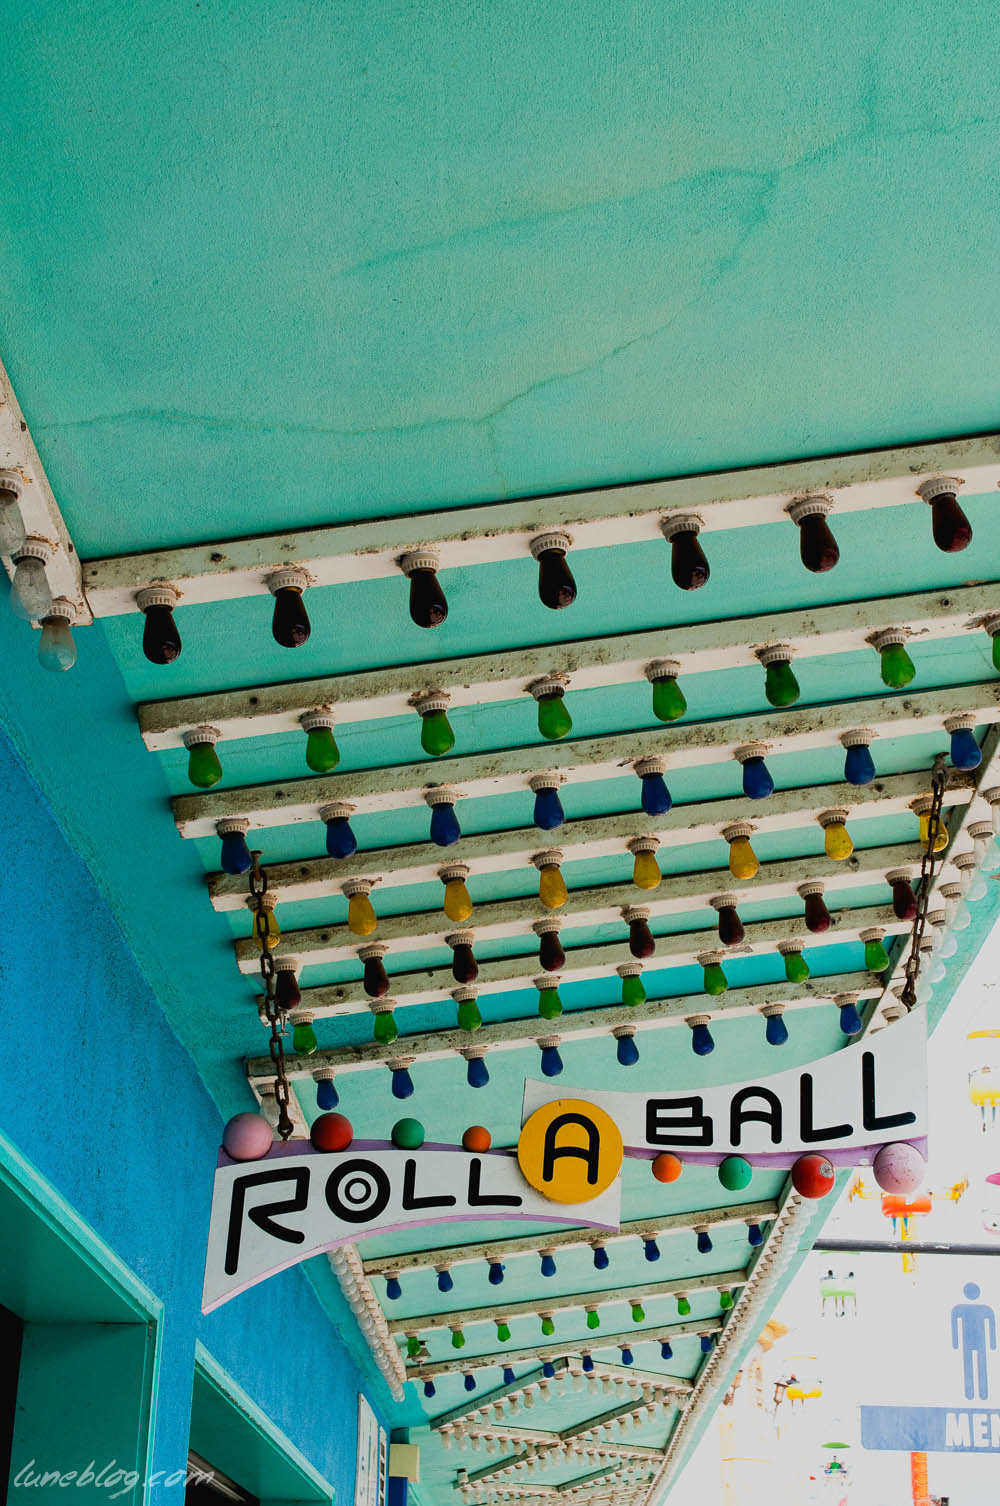 roll a ball santa cruz vintage games